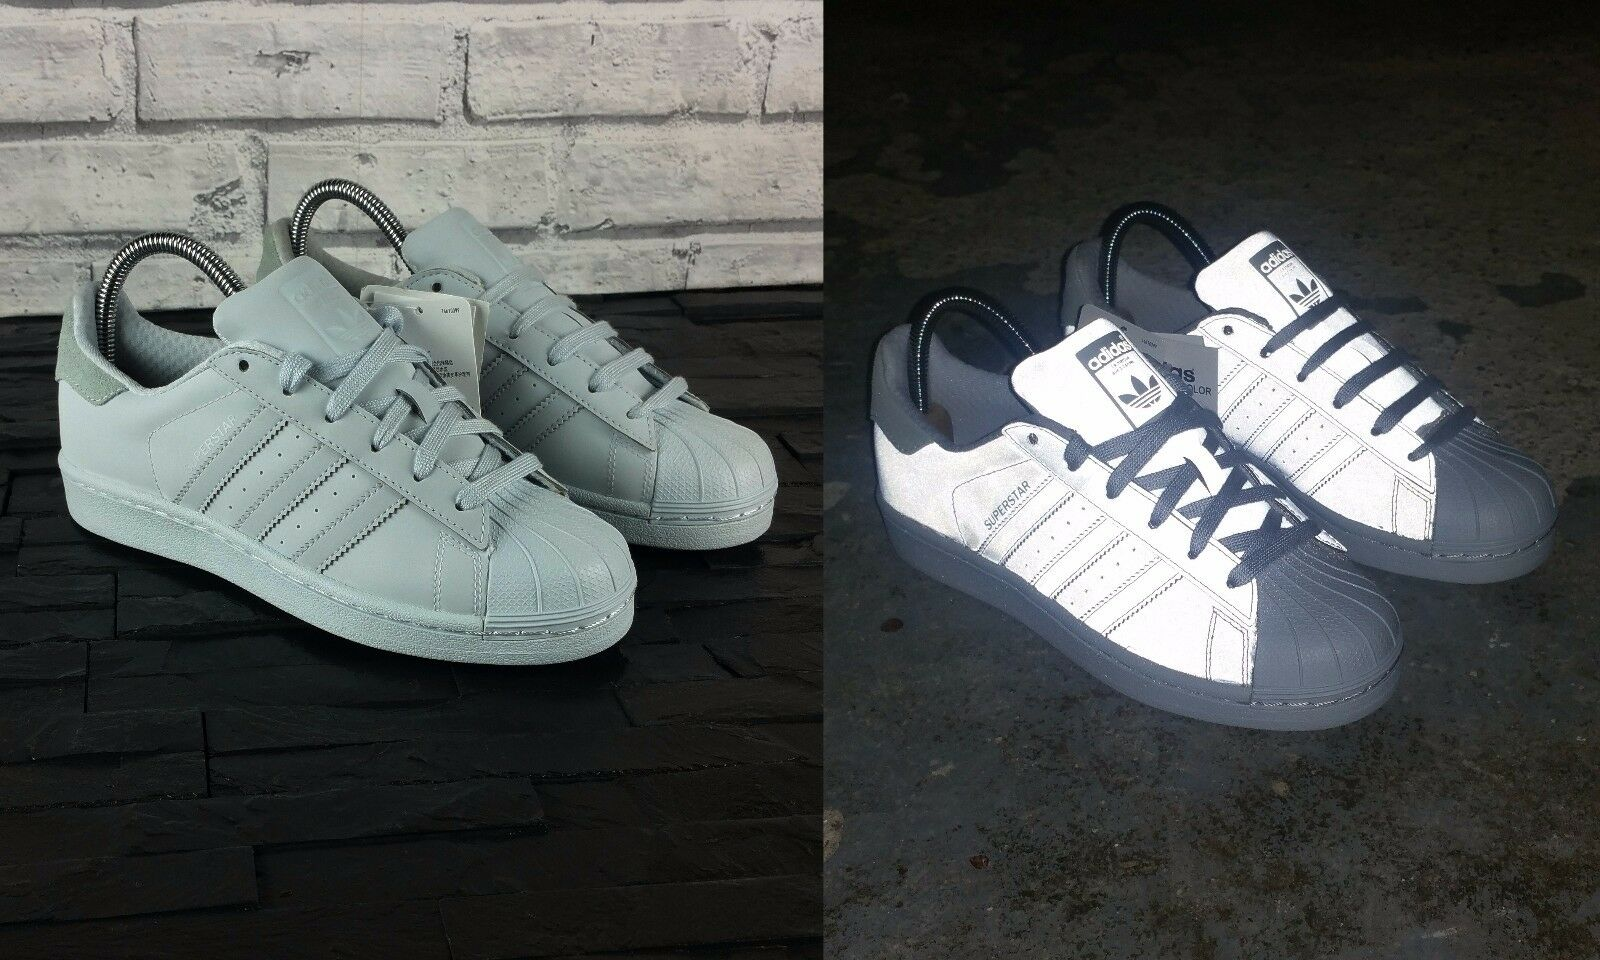 BNWB adidas originals Superstar Trainers Adicolor Halo Blue Reflective Trainers Superstar UK Size 5 42fe9a